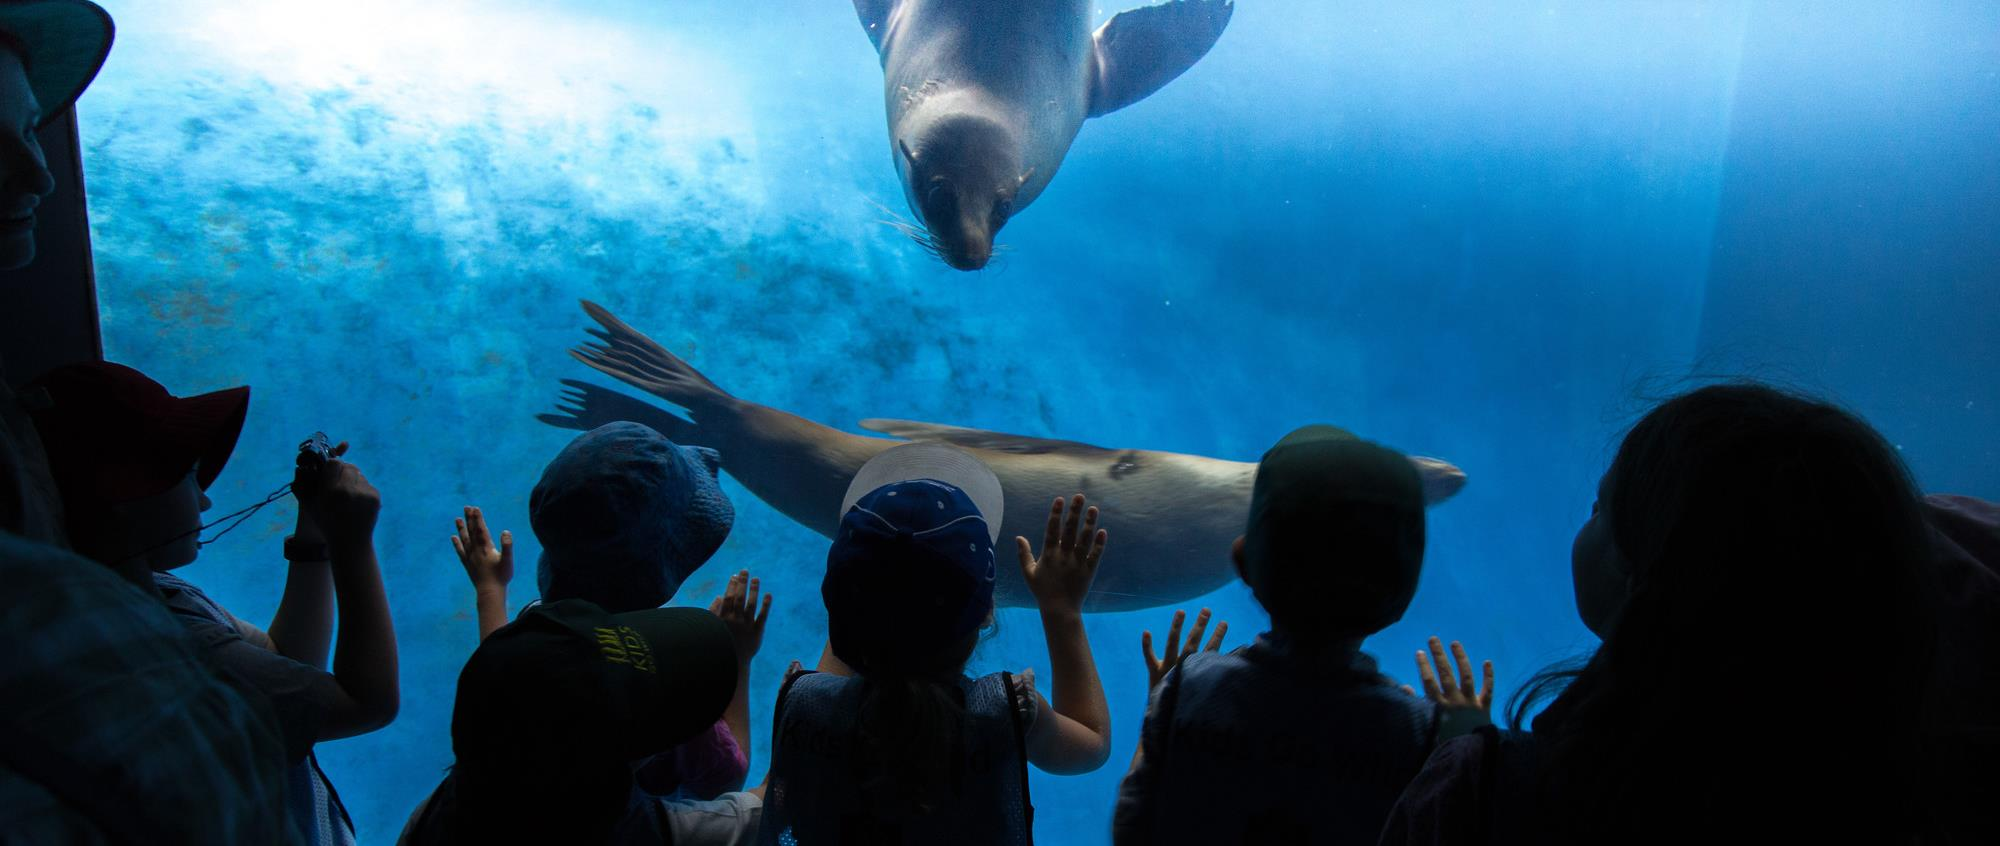 The silhouettes of small children looking into the seal exhibit at Melbourne Zoo as two seals swim by